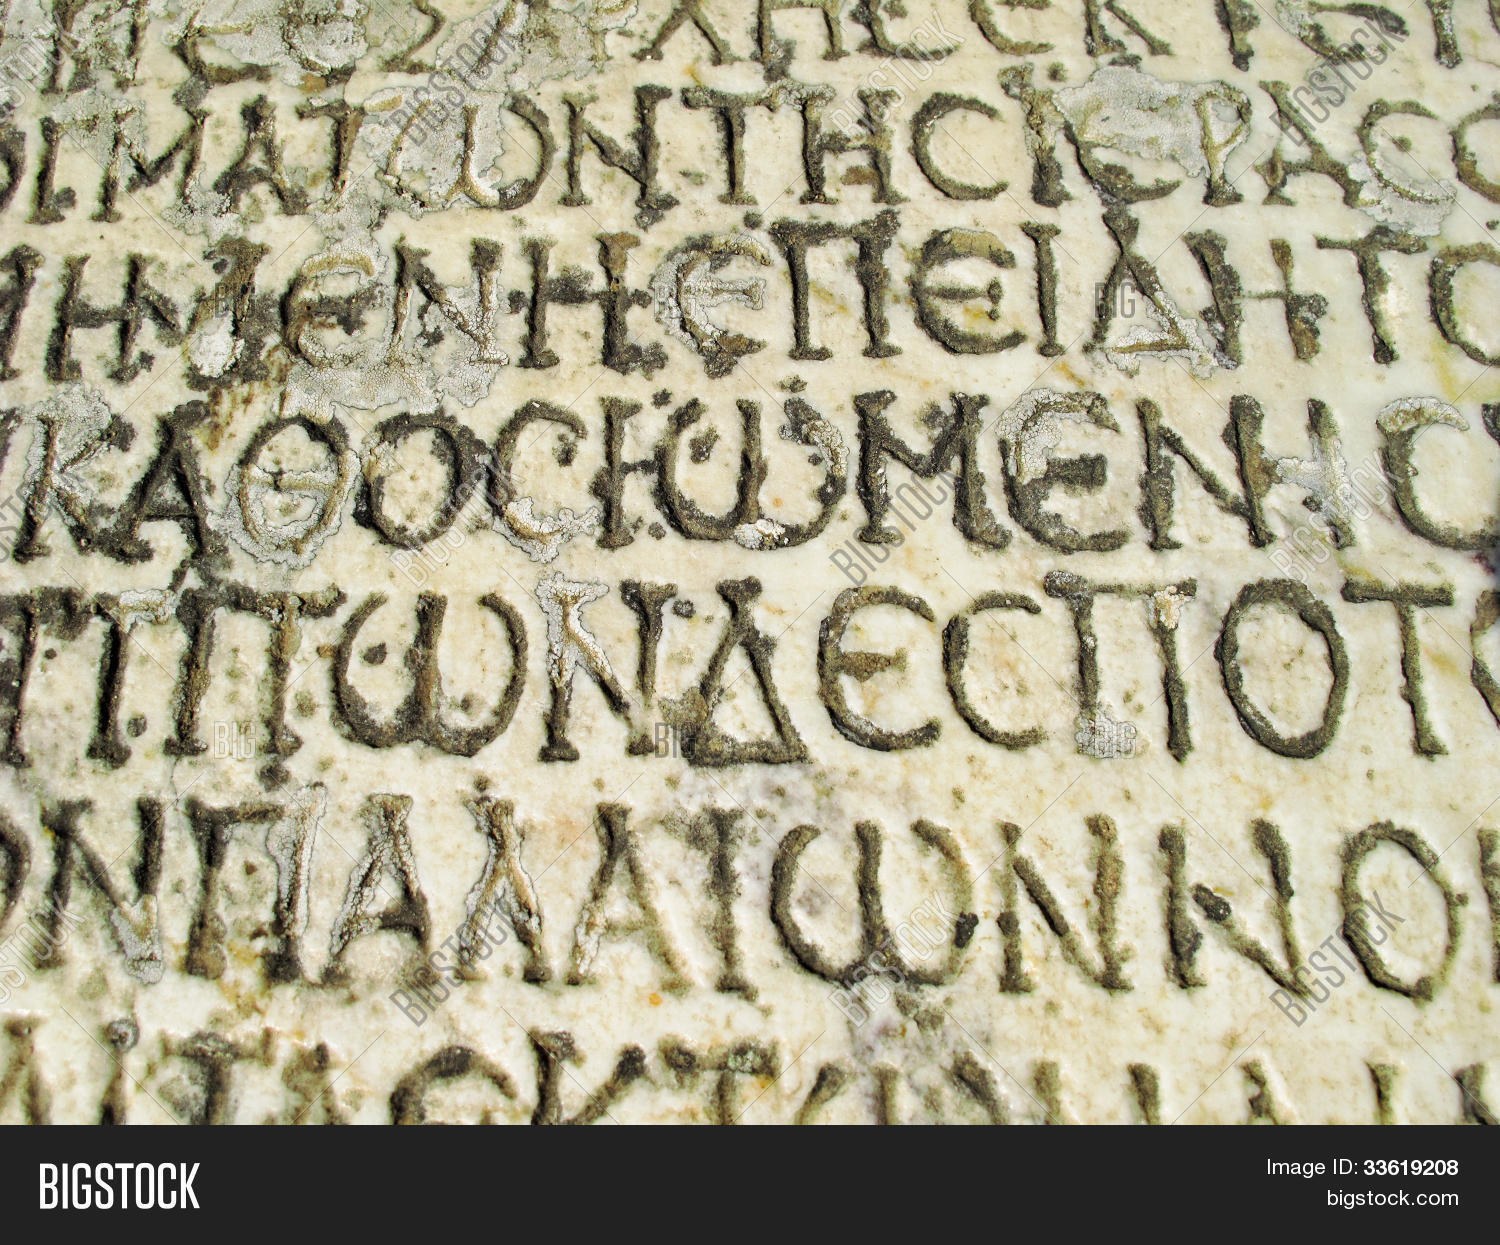 Ancient Greek Writing Image & Photo | Bigstock